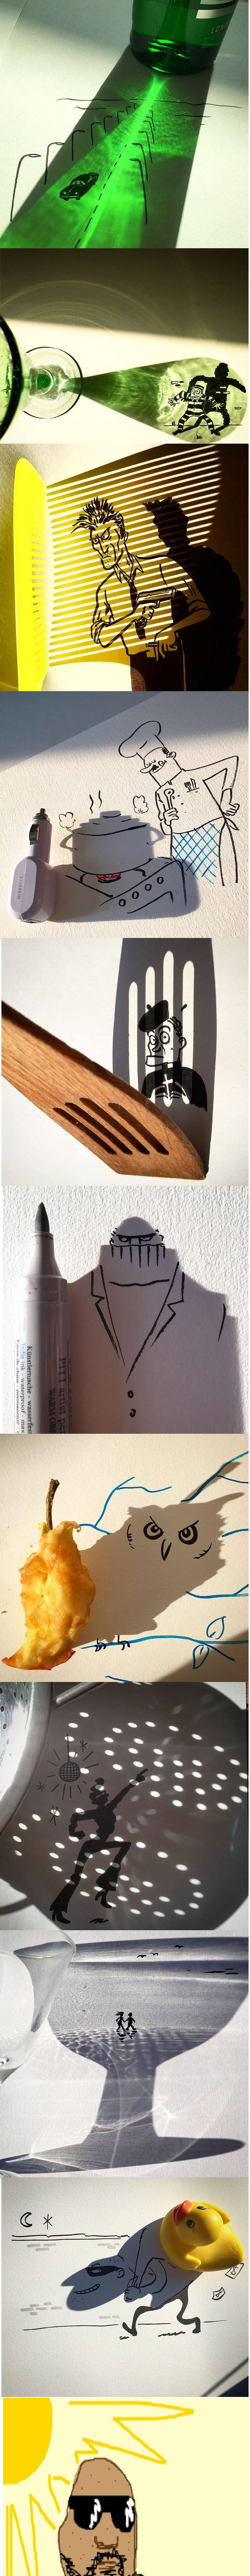 Artist Turns Shadows Of Everyday Objects Into Fun Illustrations (Vincent Bal)